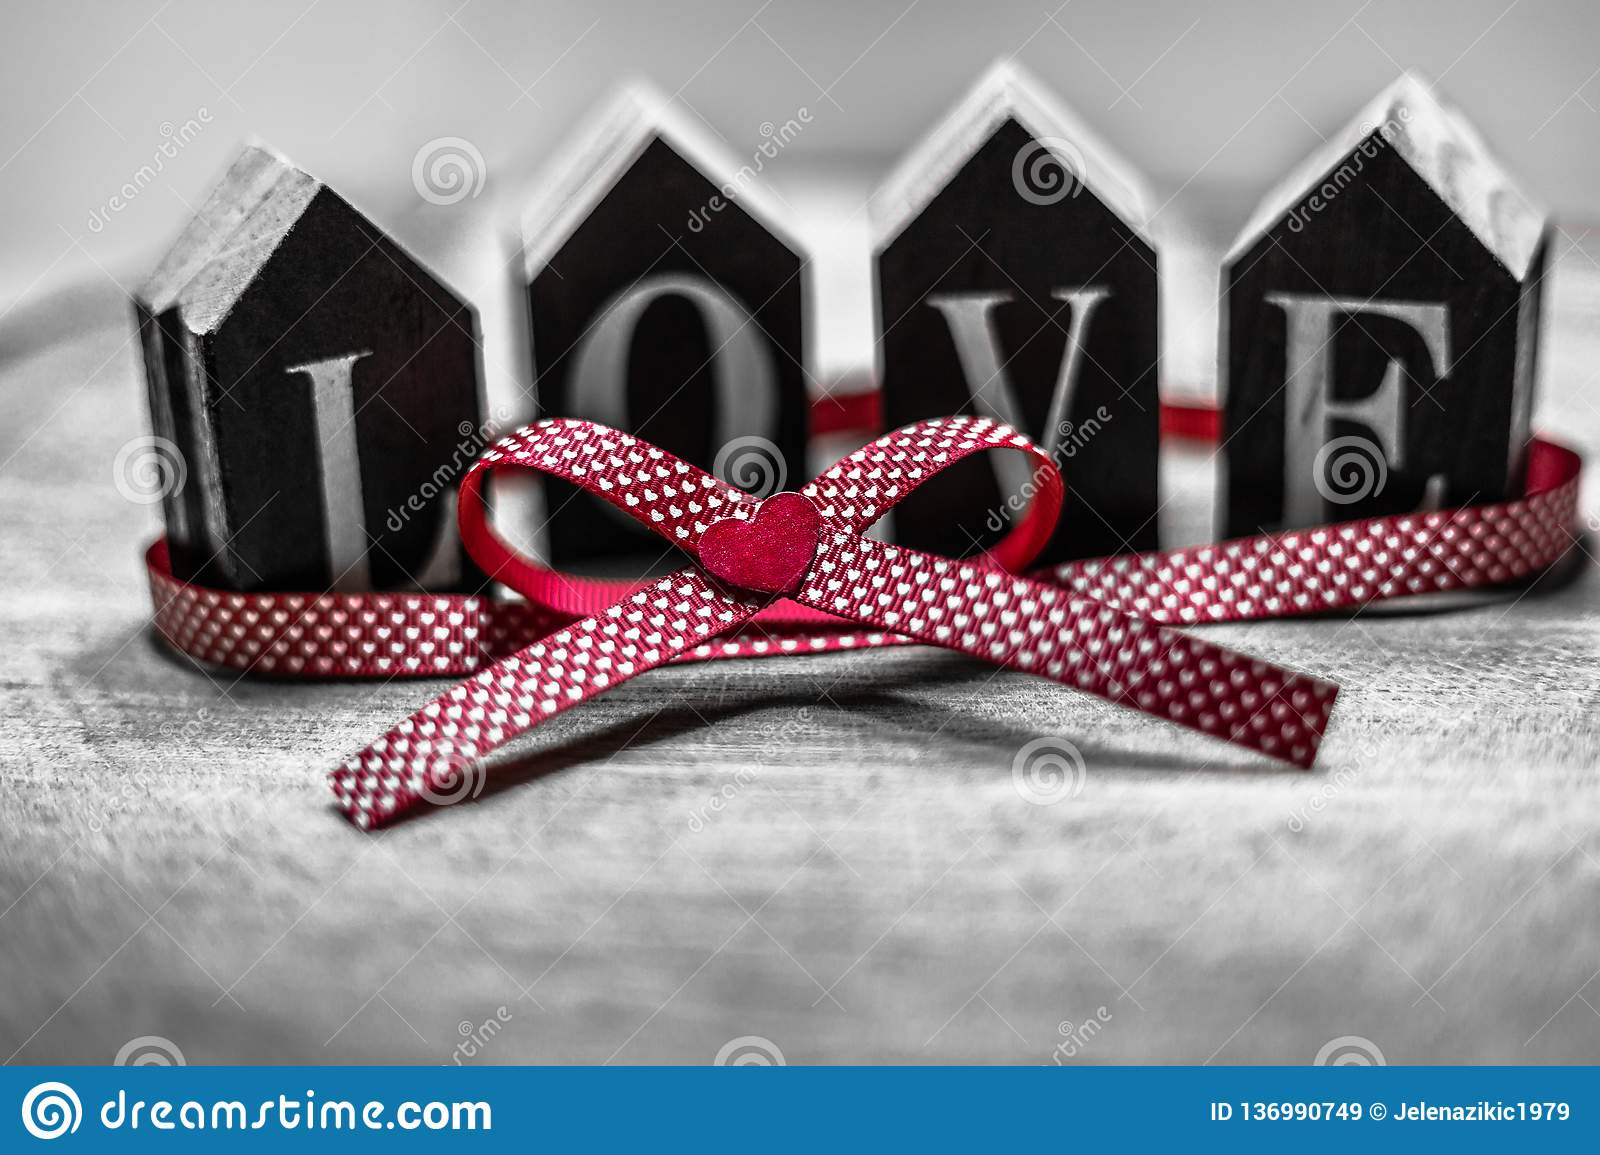 Love as a gift